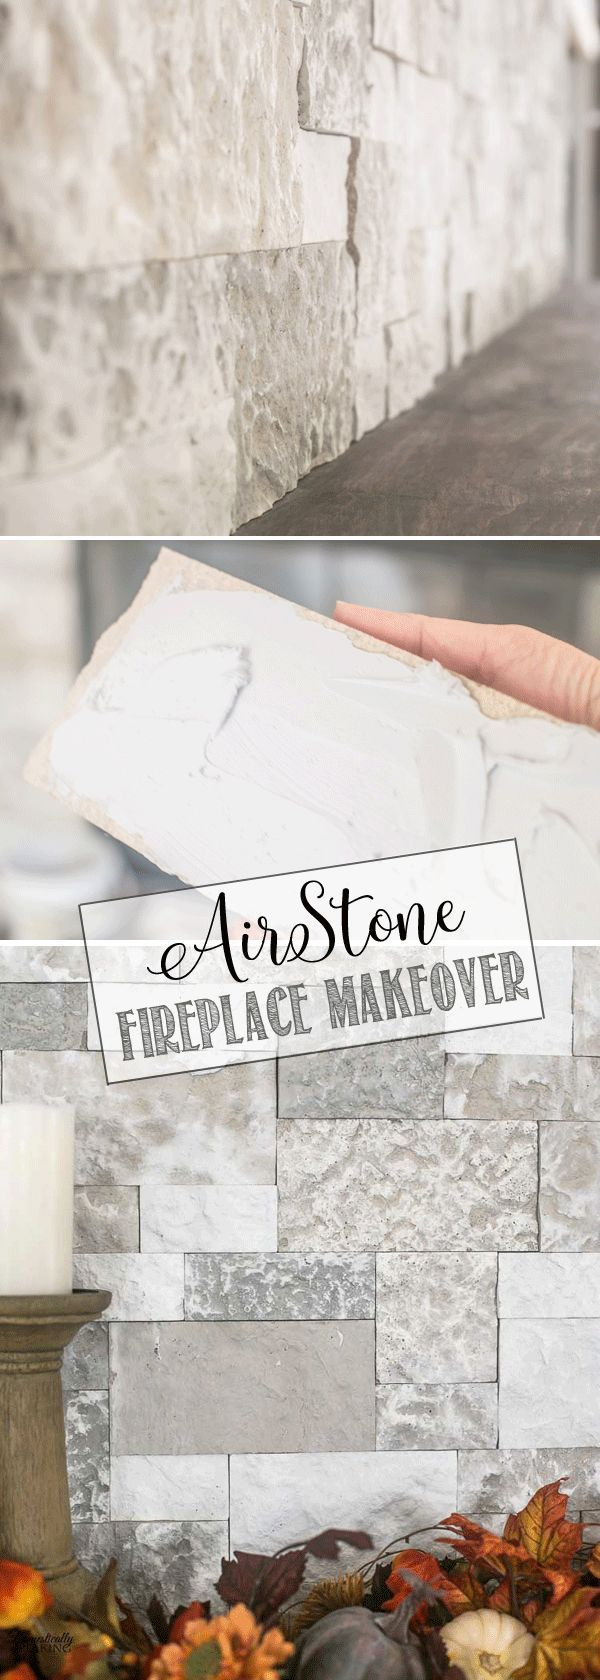 The 25 best faux stone fireplaces ideas on pinterest diy airstone fireplace makeover diy faux stone fireplace fireplace makeover tutorial airstoneveneer ad doublecrazyfo Images